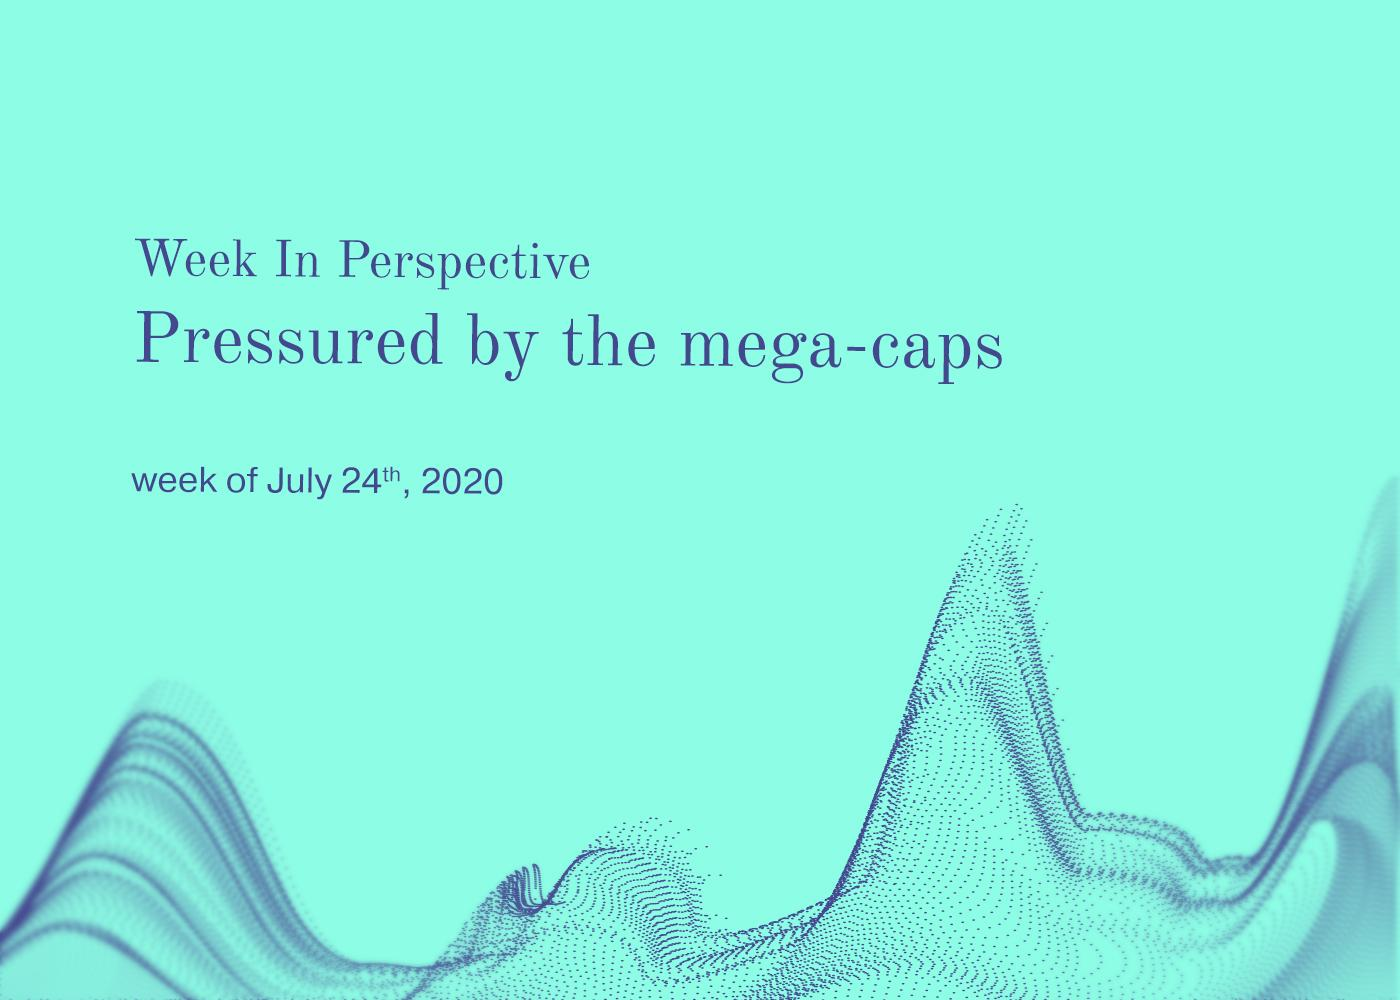 Week in Perspective July 24, 2020, Pressured by the mega-caps Thumbnail